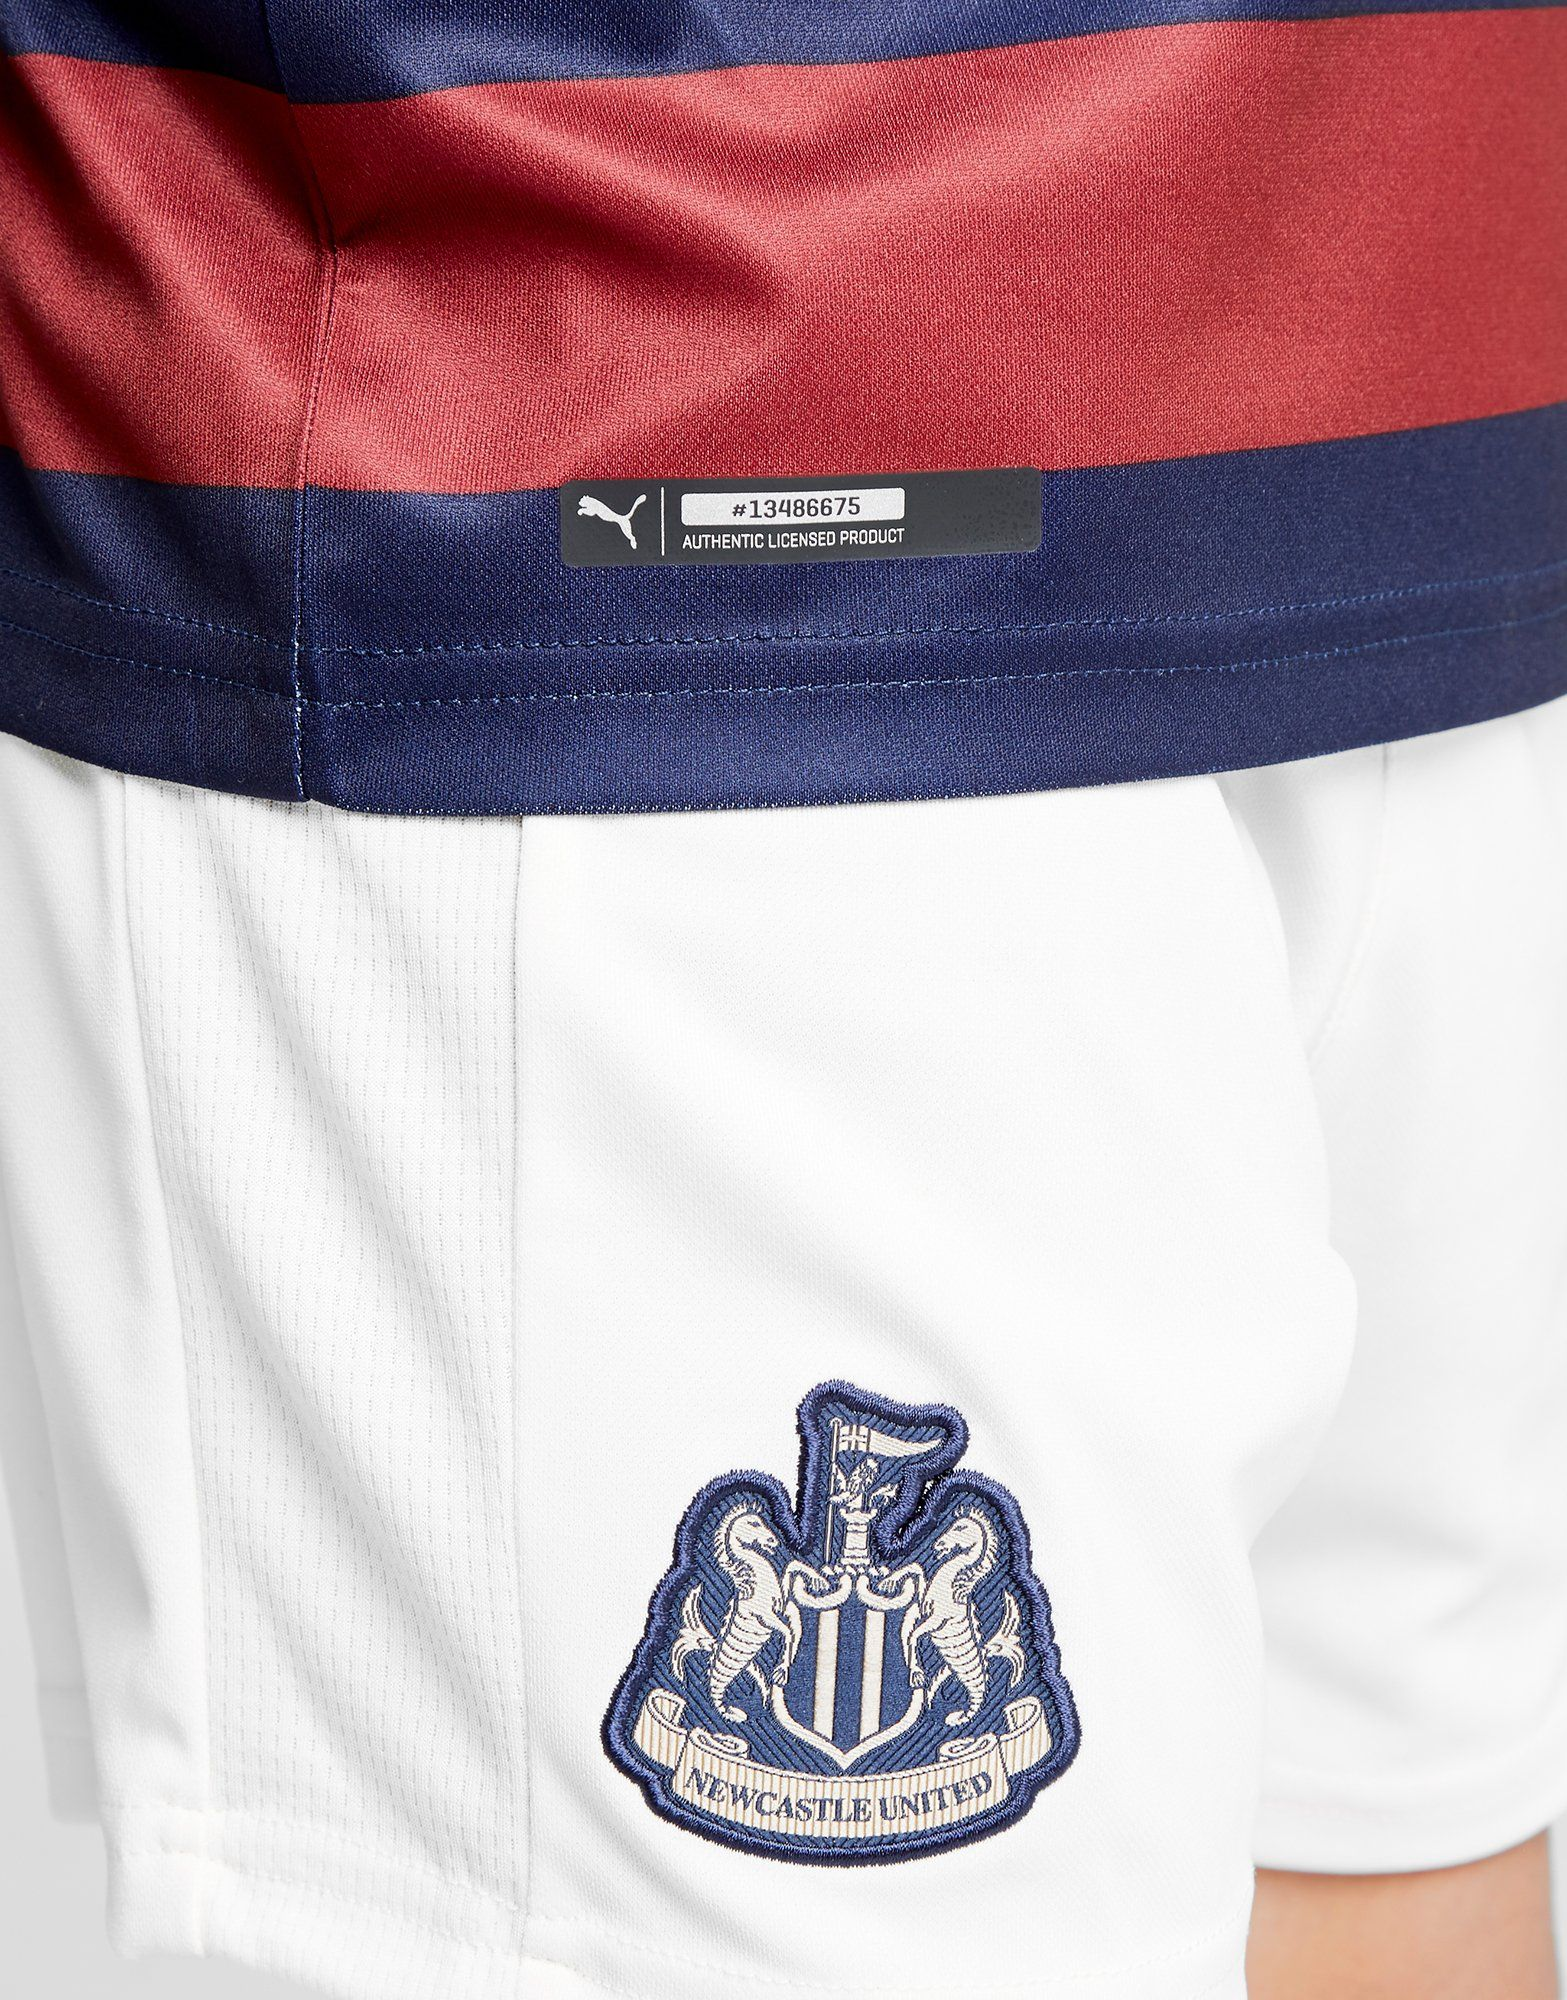 PUMA camiseta 2.ª equipación Newcastle United FC 2018/19 júnior